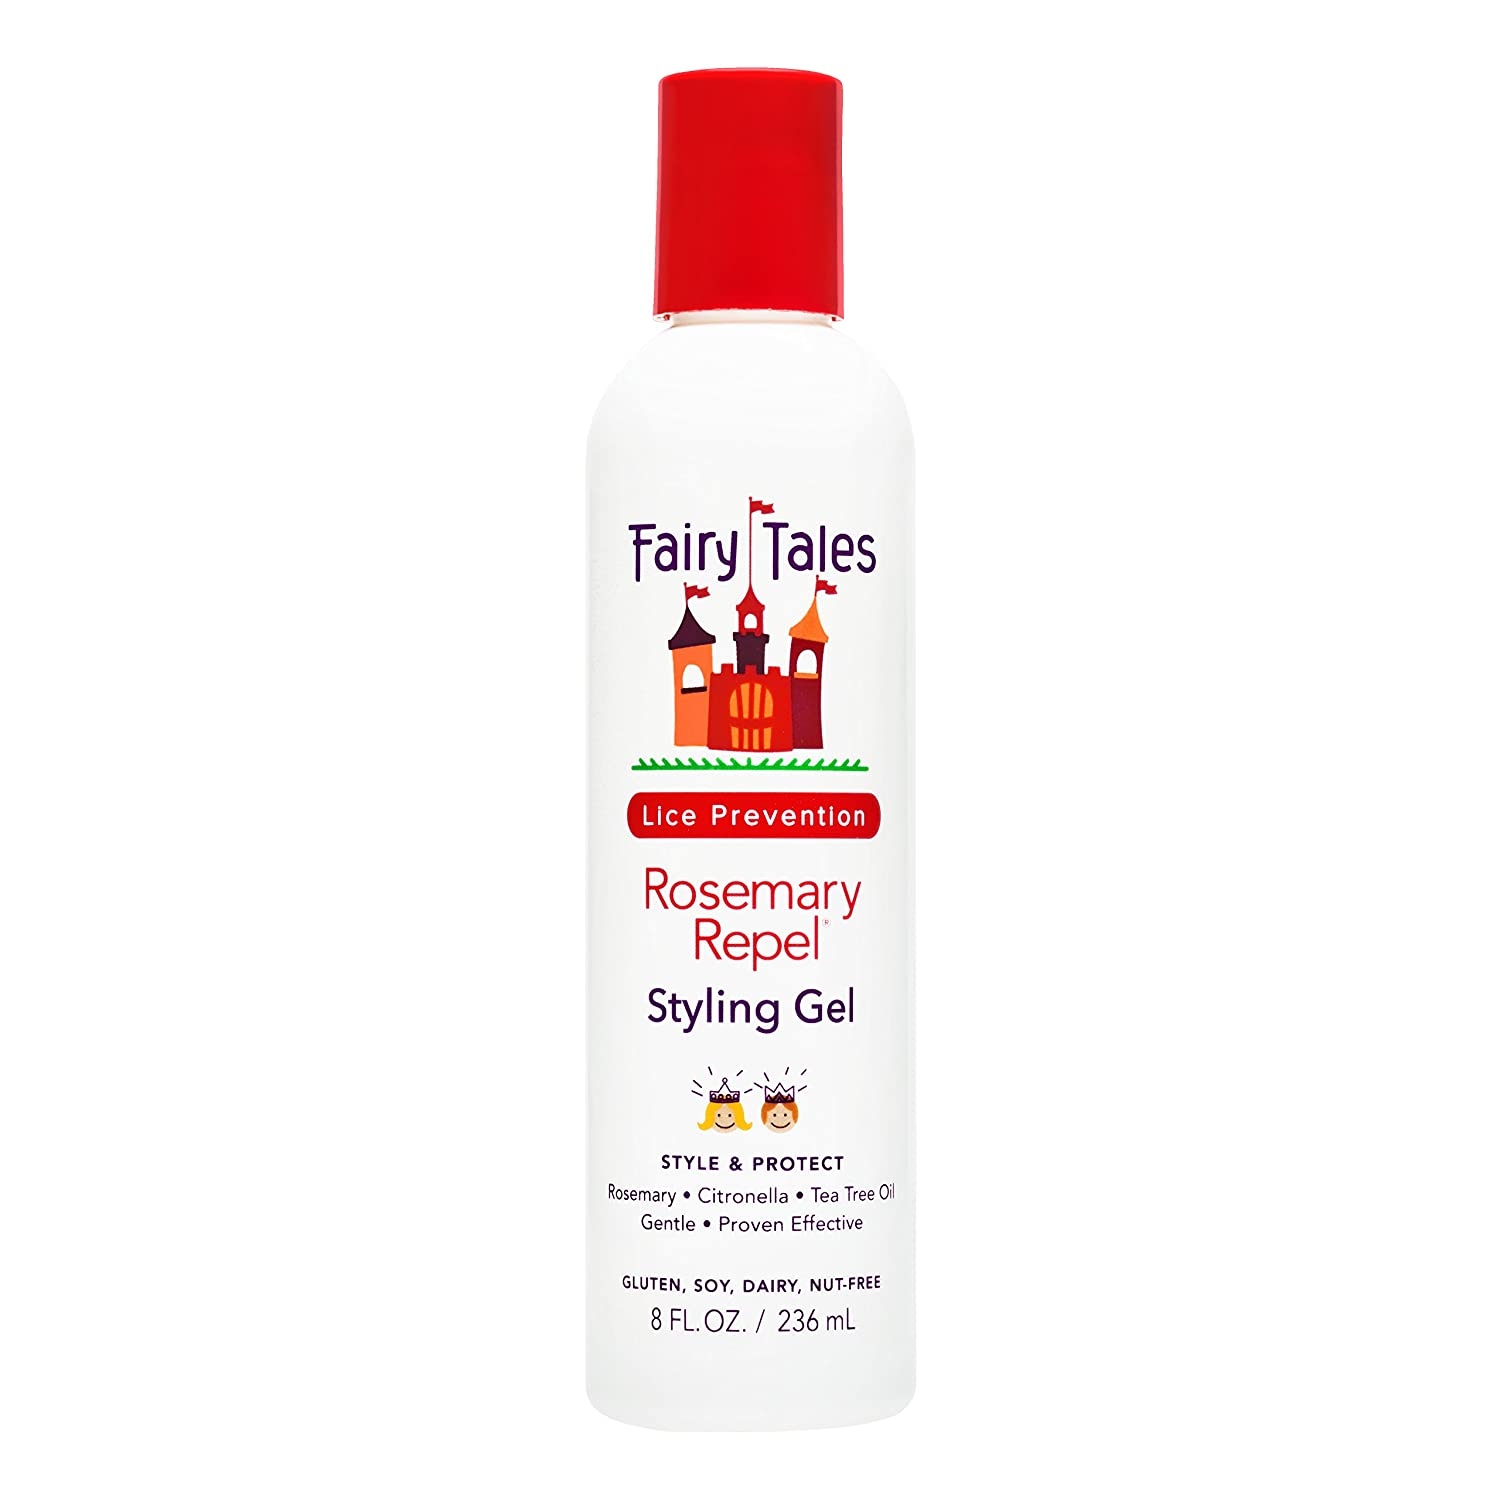 Fairy Tales Rosemary Repel Daily Kid Styling Gel- Kids Hair Gel for Lice Prevention, 8 Fl Oz (Pack of 1): Industrial & Scientific